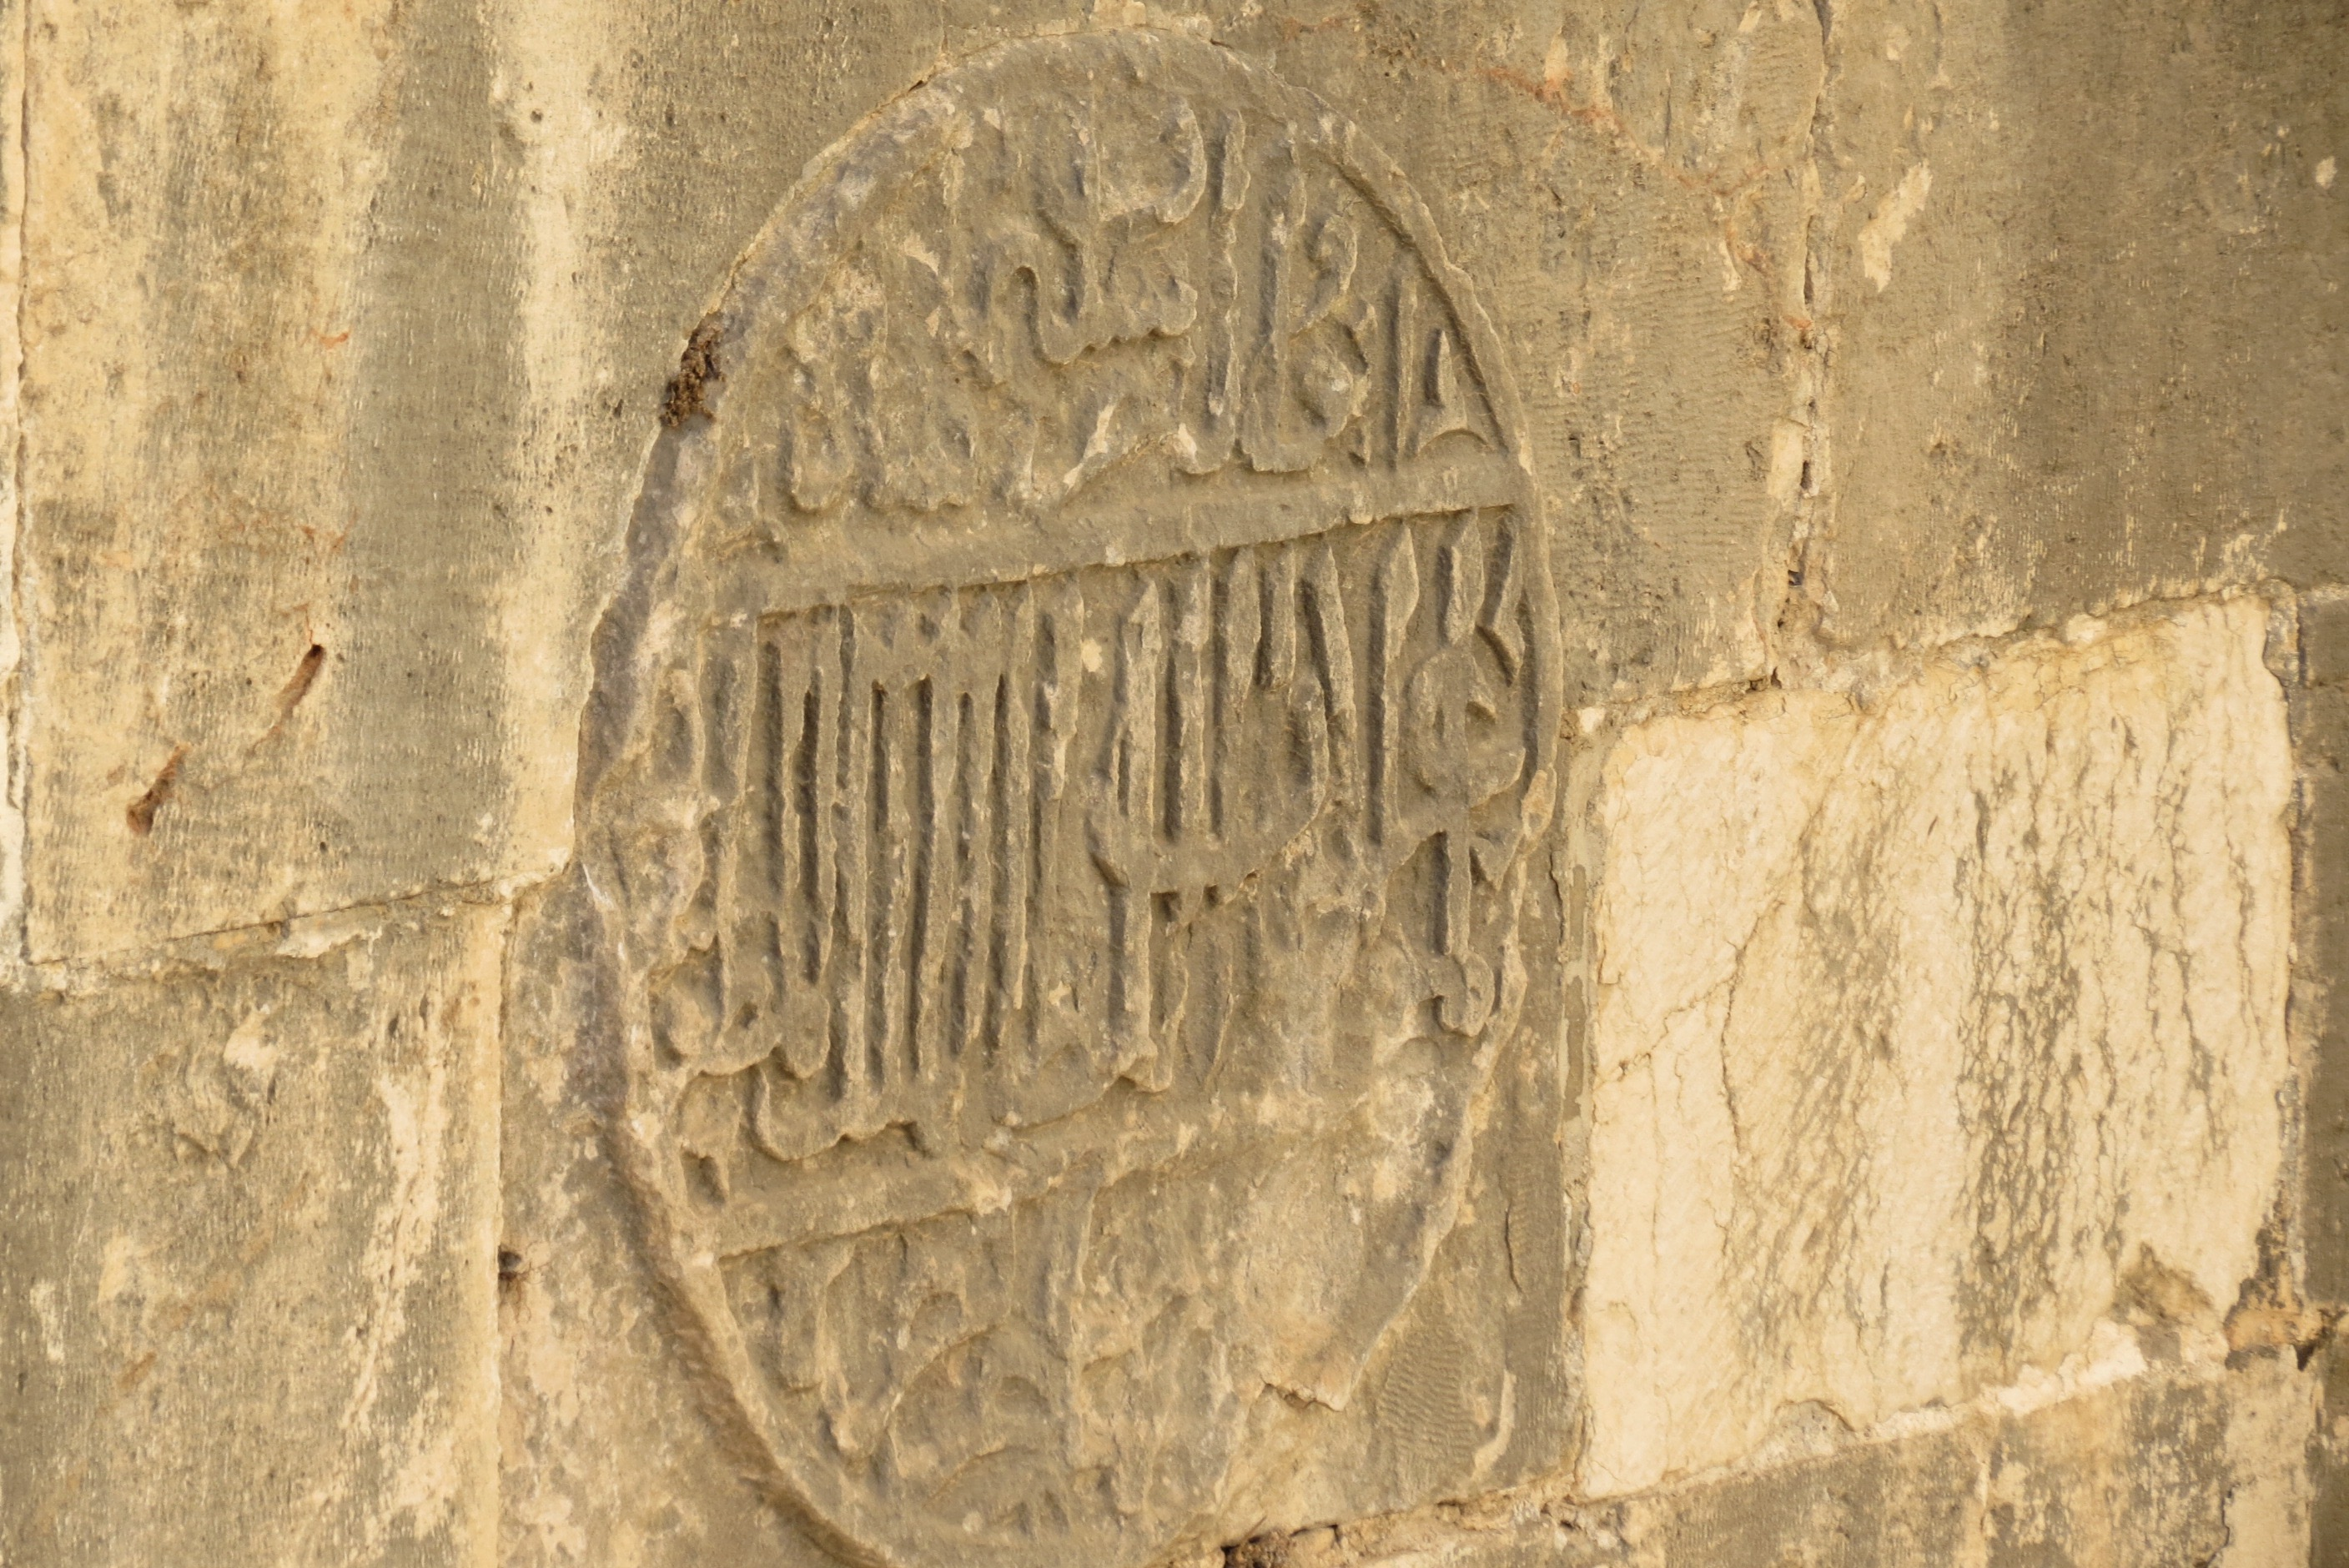 There is an inscription in Arabic above the Ottoman entrance describing the rebuilding of the Citadel in 1538 by Suleiman the Magnificent, the man who built of the current walls of Jerusalem.